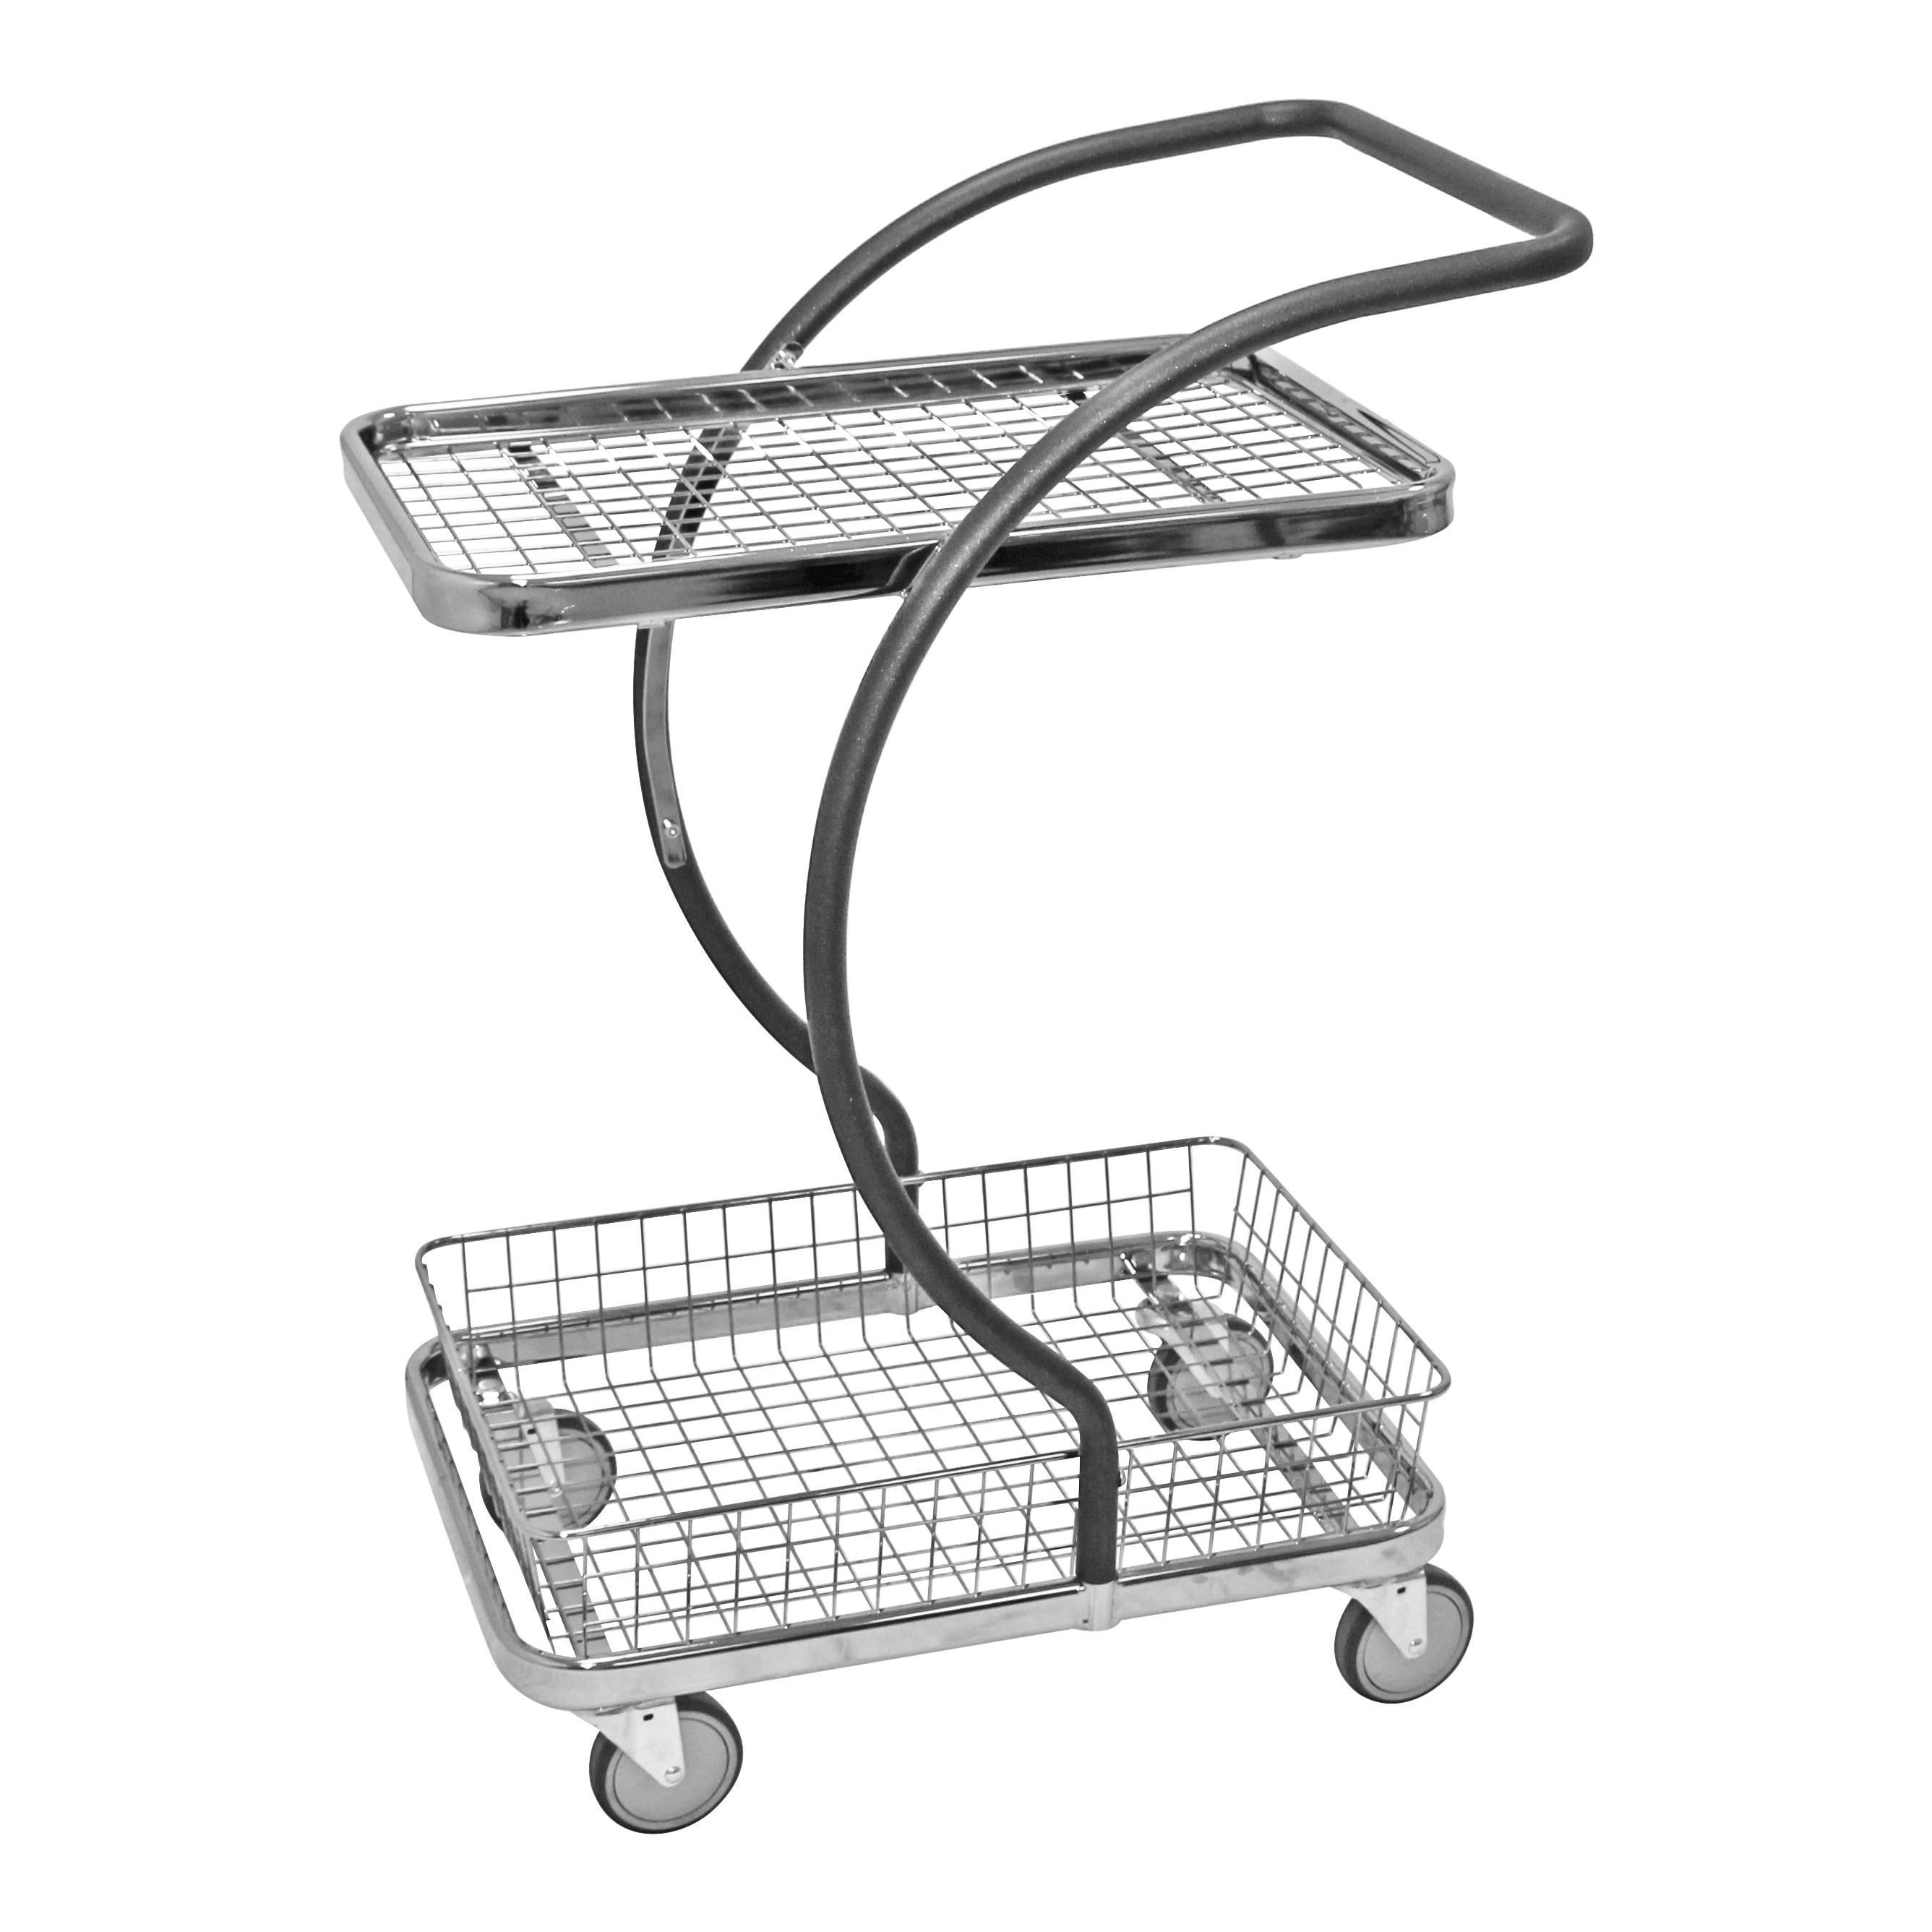 C-line basket trolley KM96203